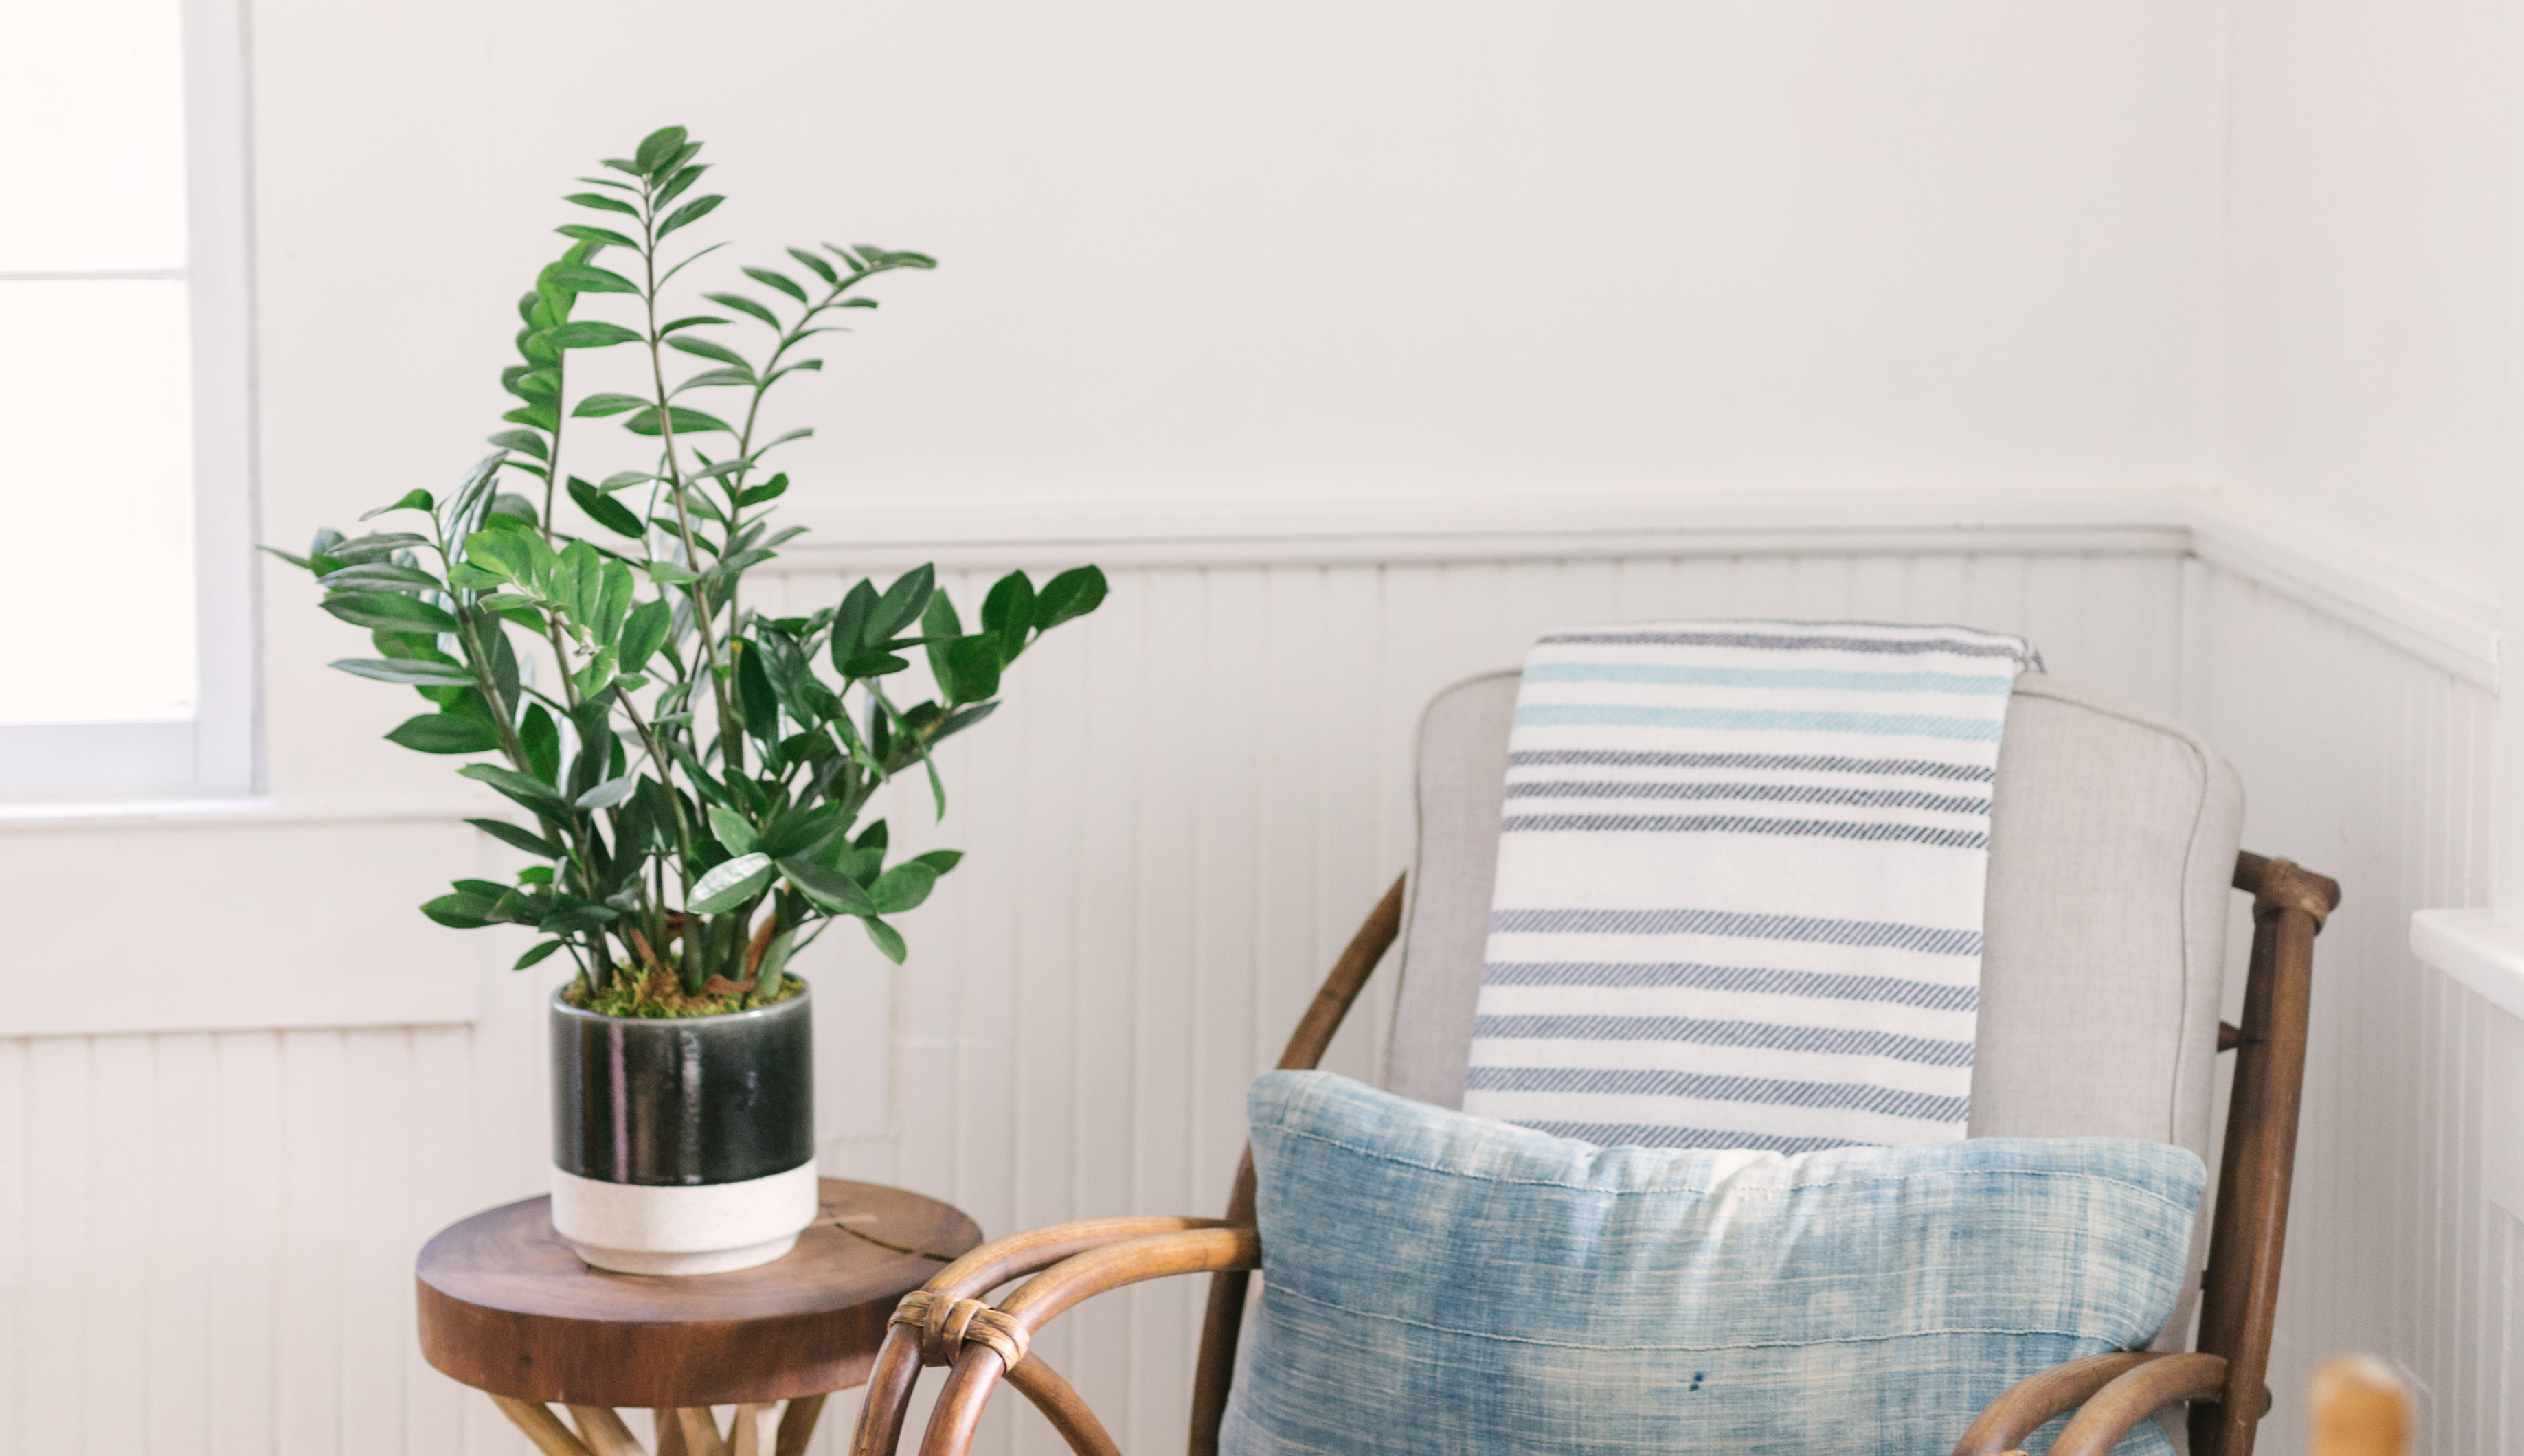 ZZ Plant on side table next to chair